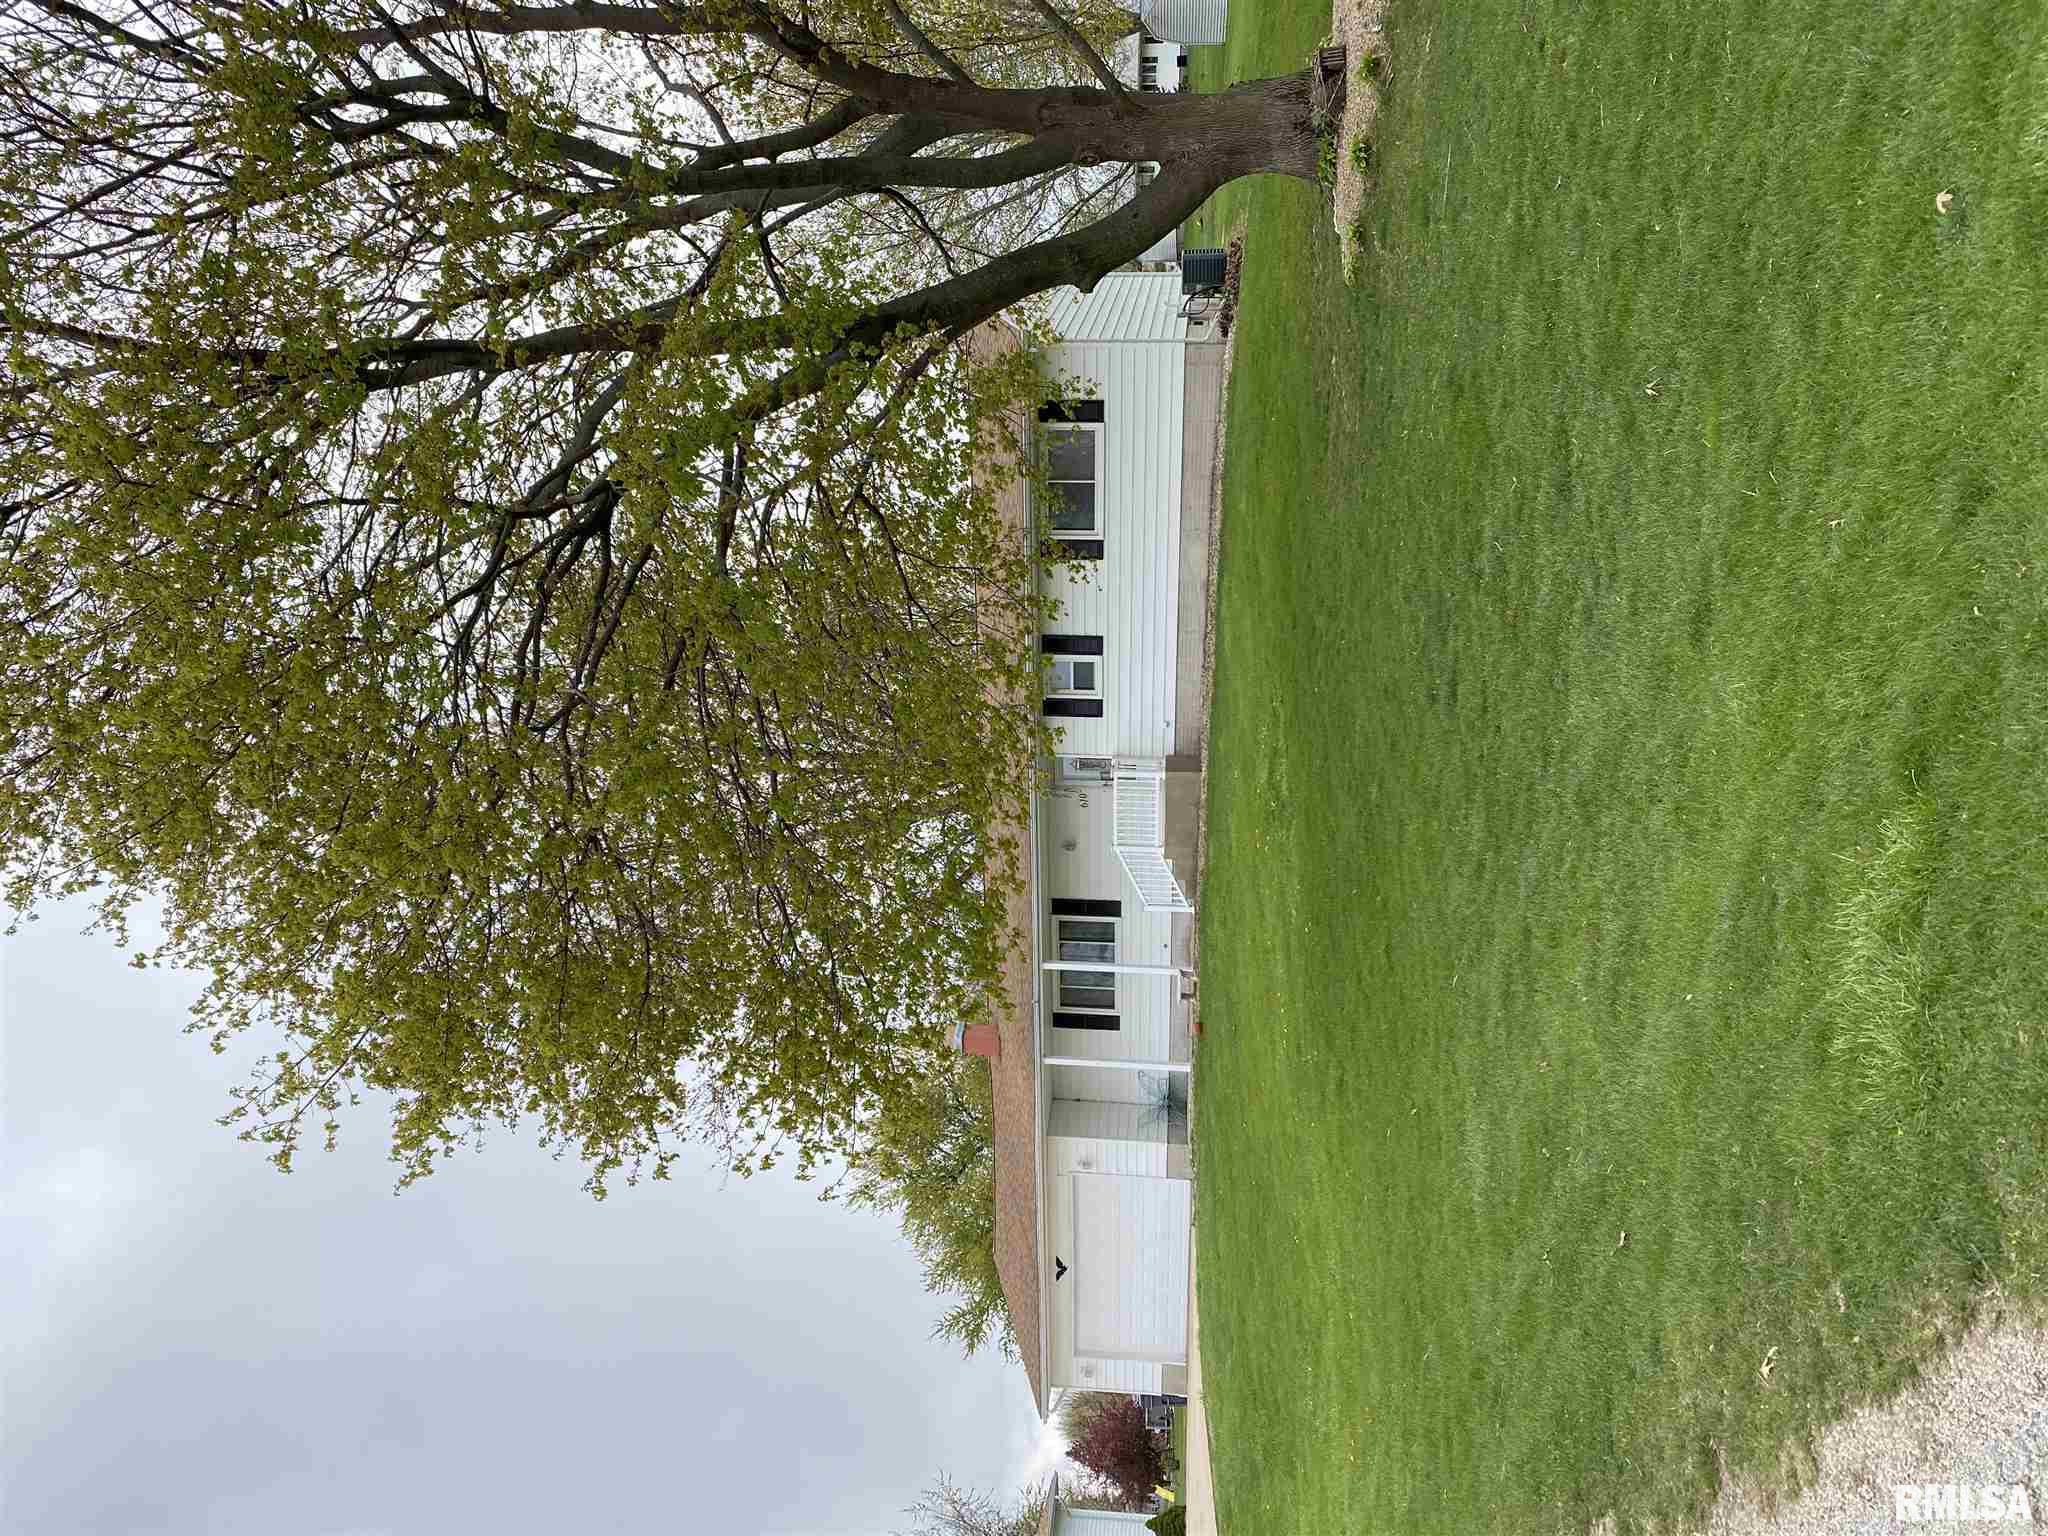 610 COUNTRY Property Photo - Abingdon, IL real estate listing